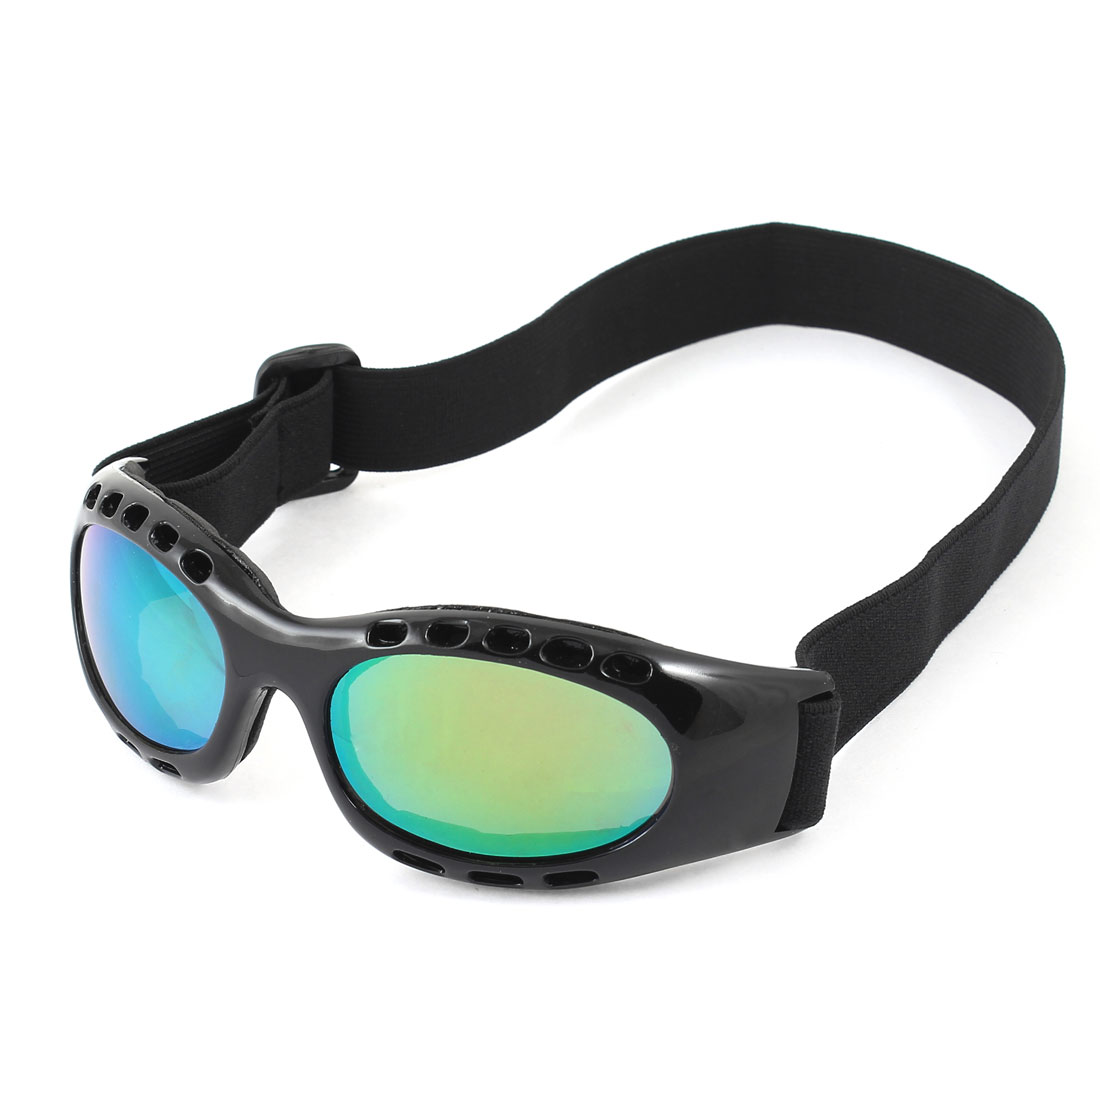 Man Woman Outdoor Sports Adjustable Band Ski Goggles Snowboard Glasses White Black by Unique-Bargains